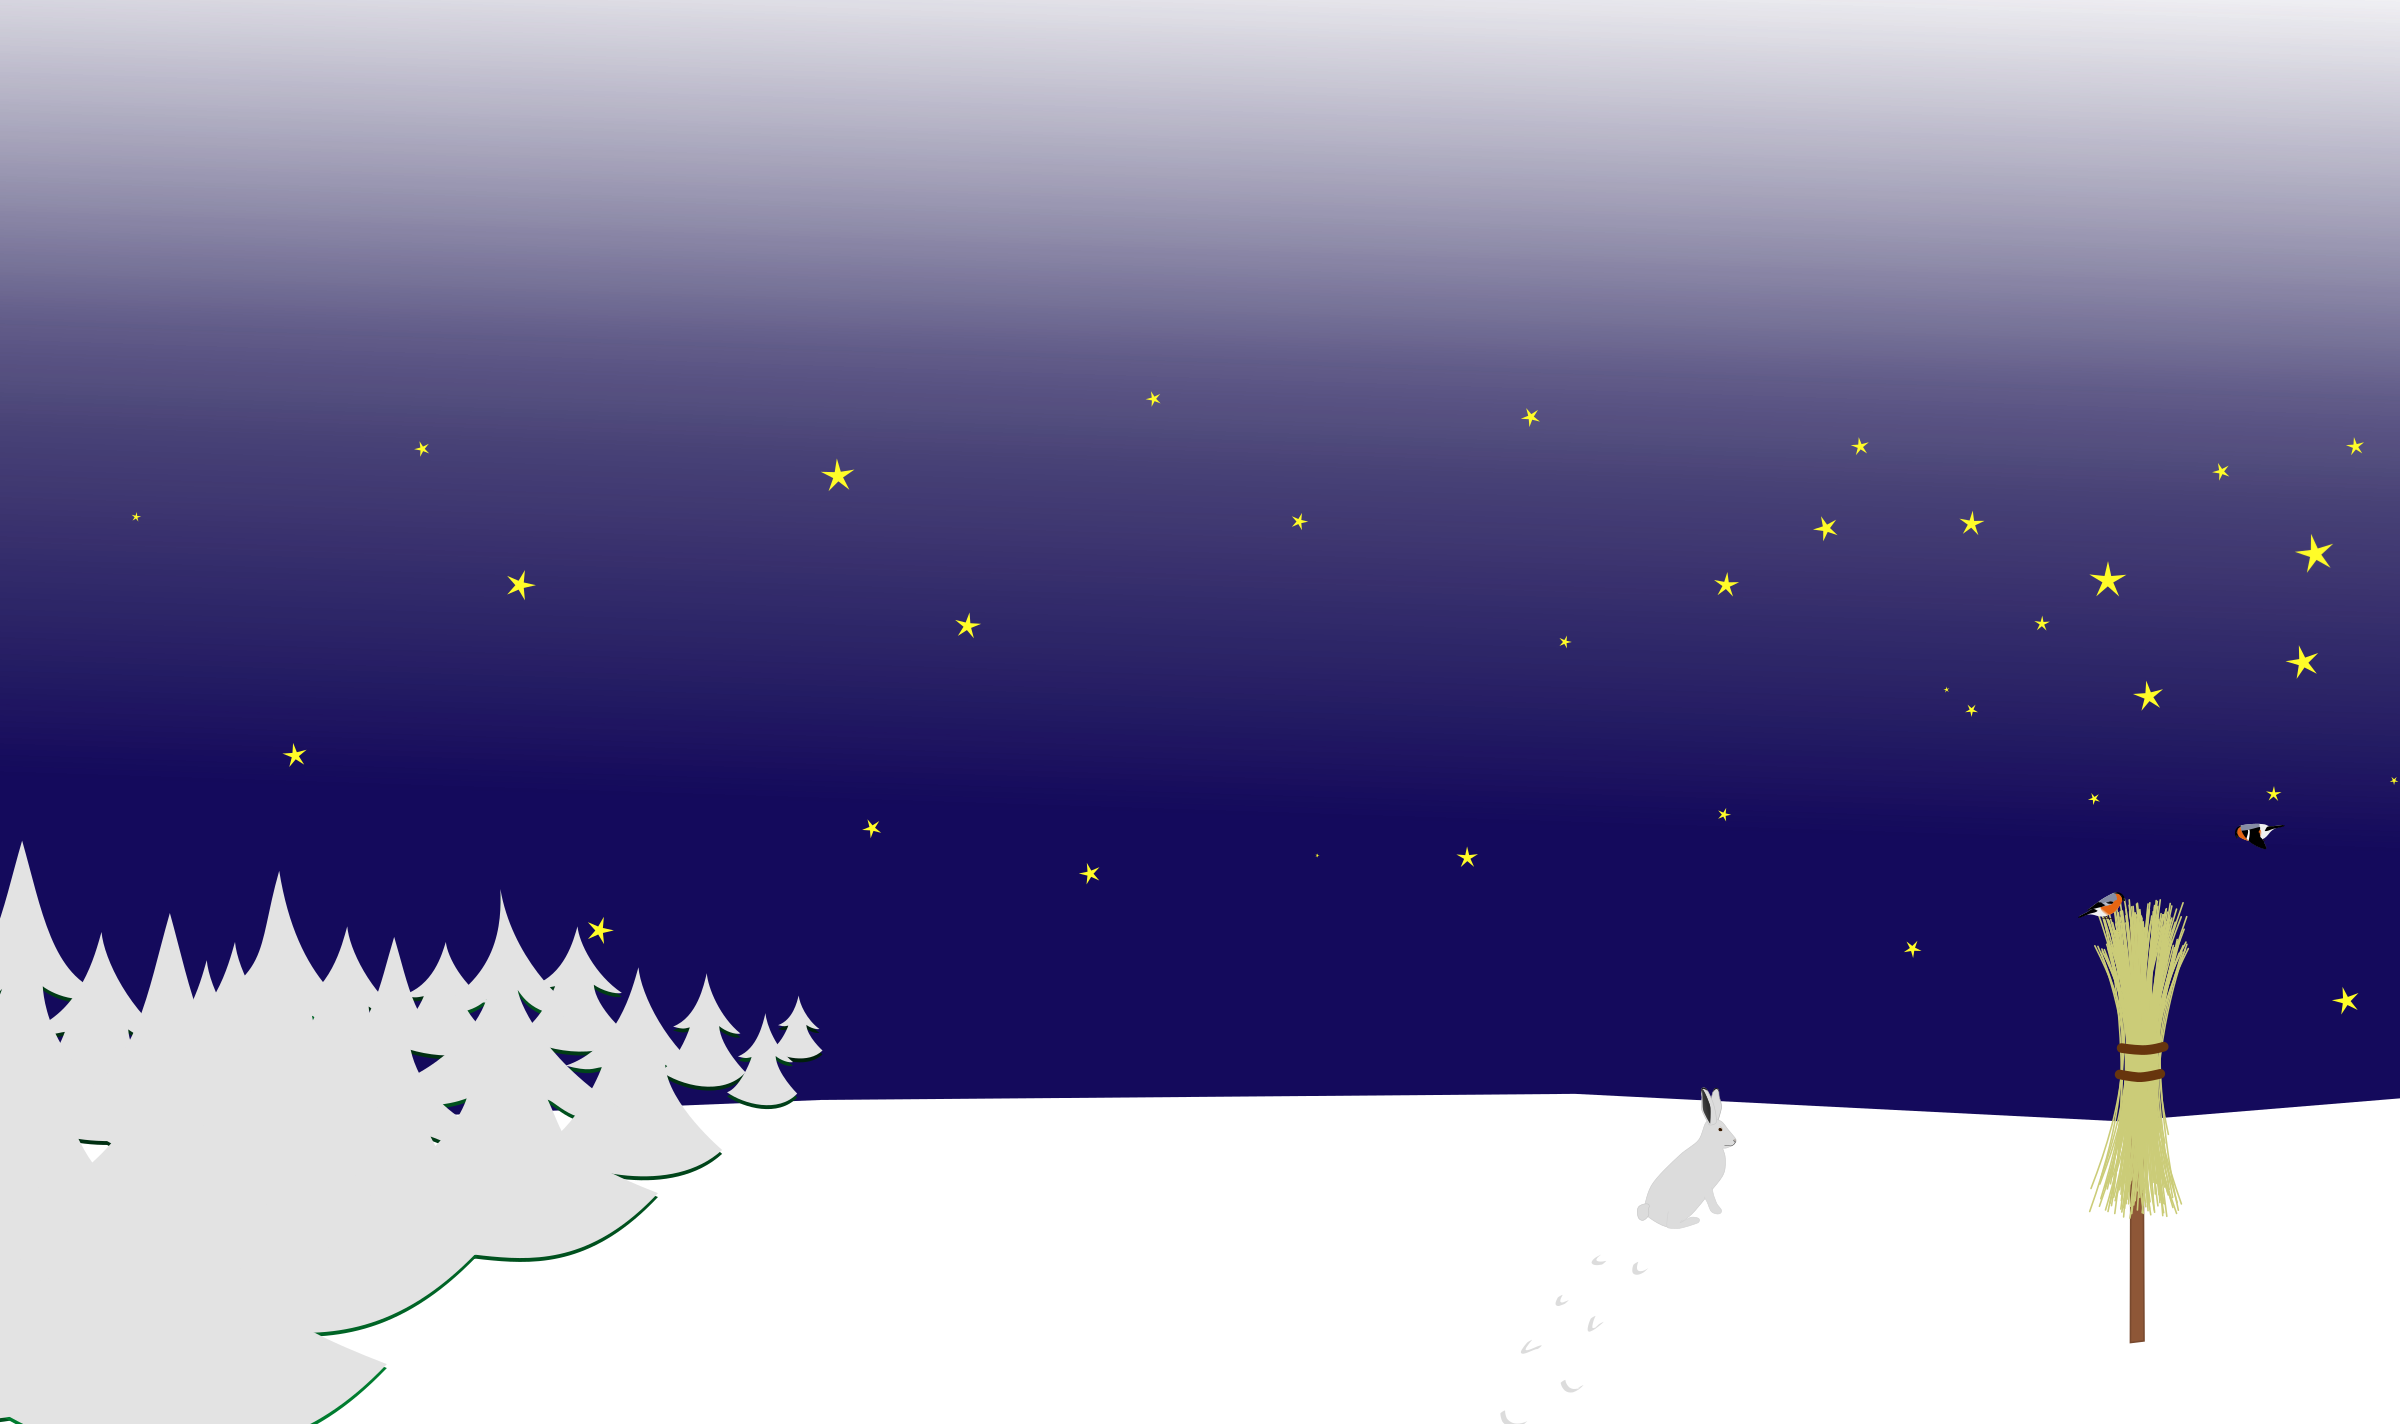 clipart free stock Drawing snow scene. Winter night icons png